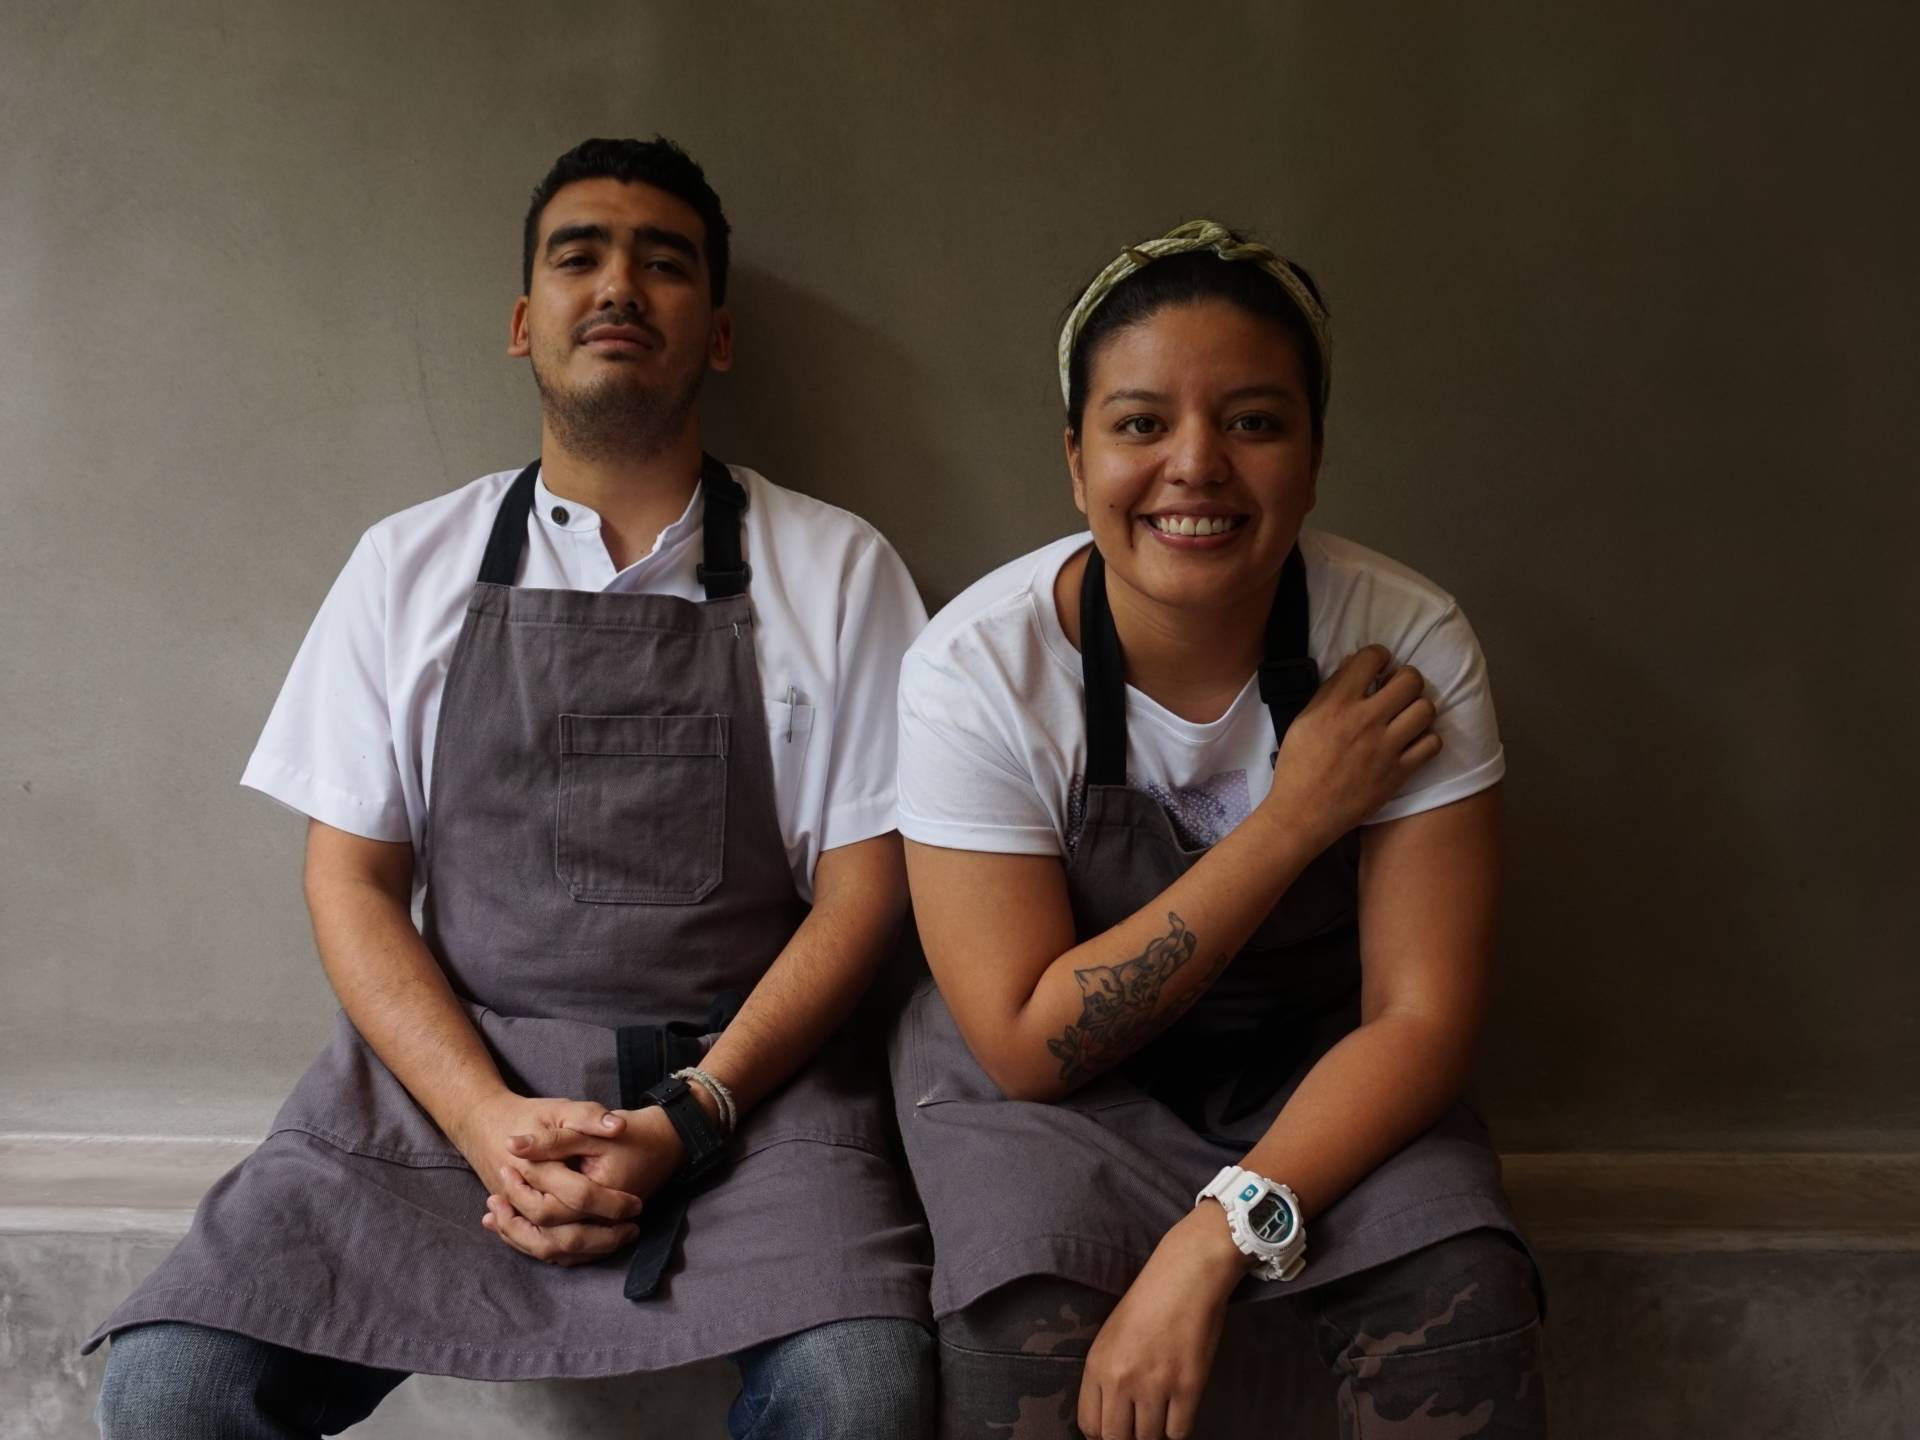 """Chefs Mario Portillo and Fatima Mirandal of Boca Boca restaurant. """"The flavor is new and exciting for our generation, and brings back a flood of good memories for the older people,"""" Mirandal says."""